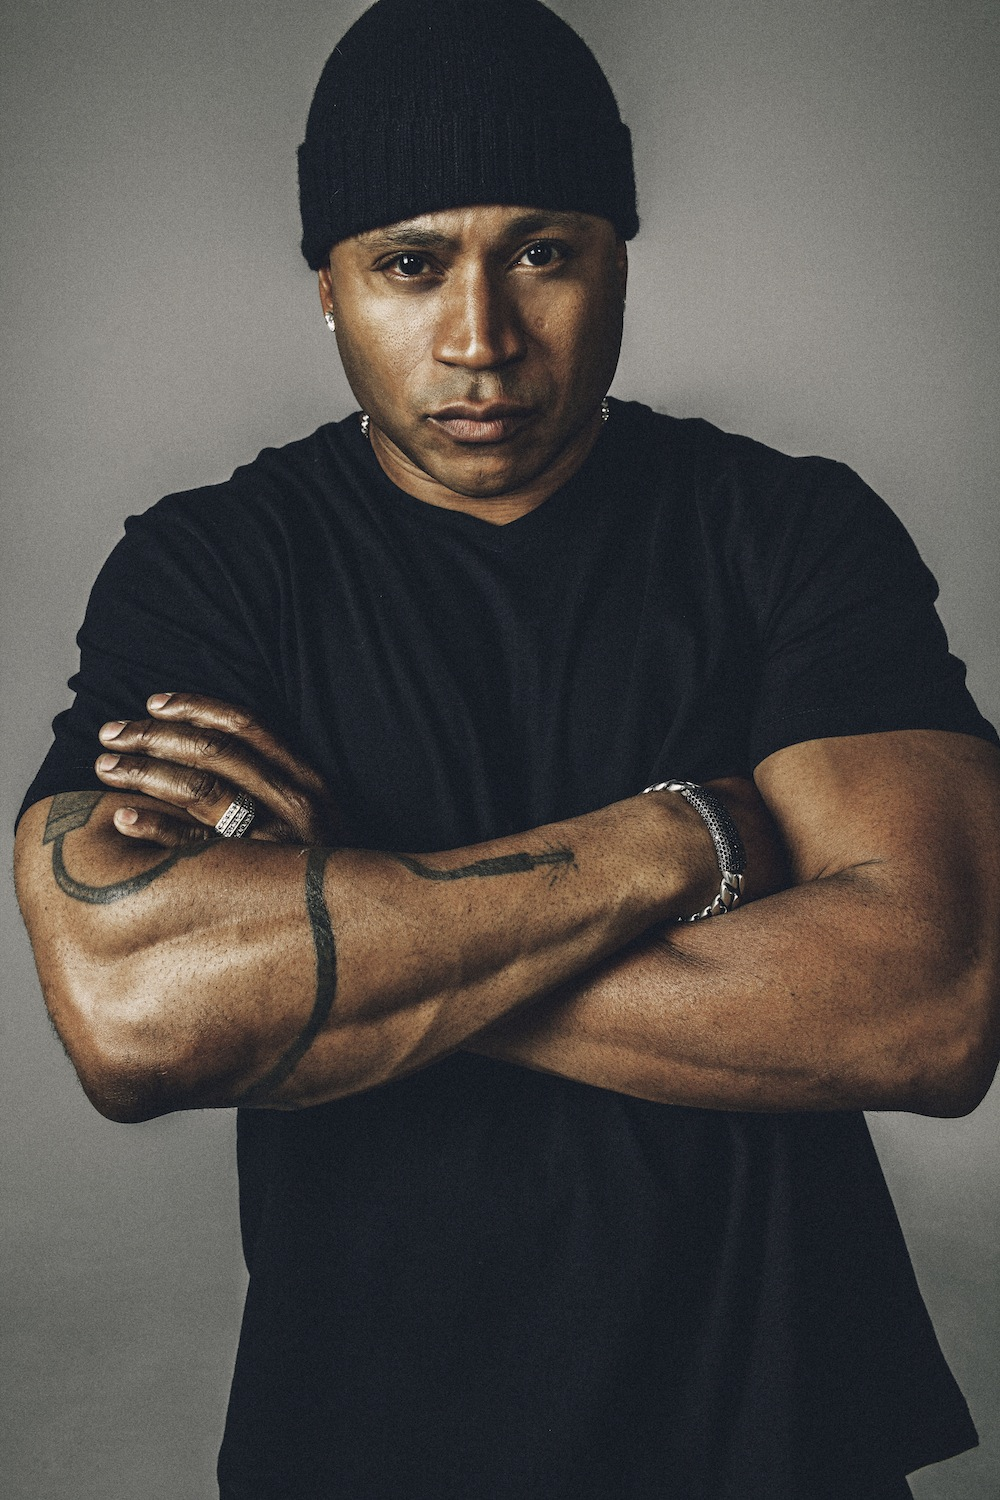 is ll cool j bisexual